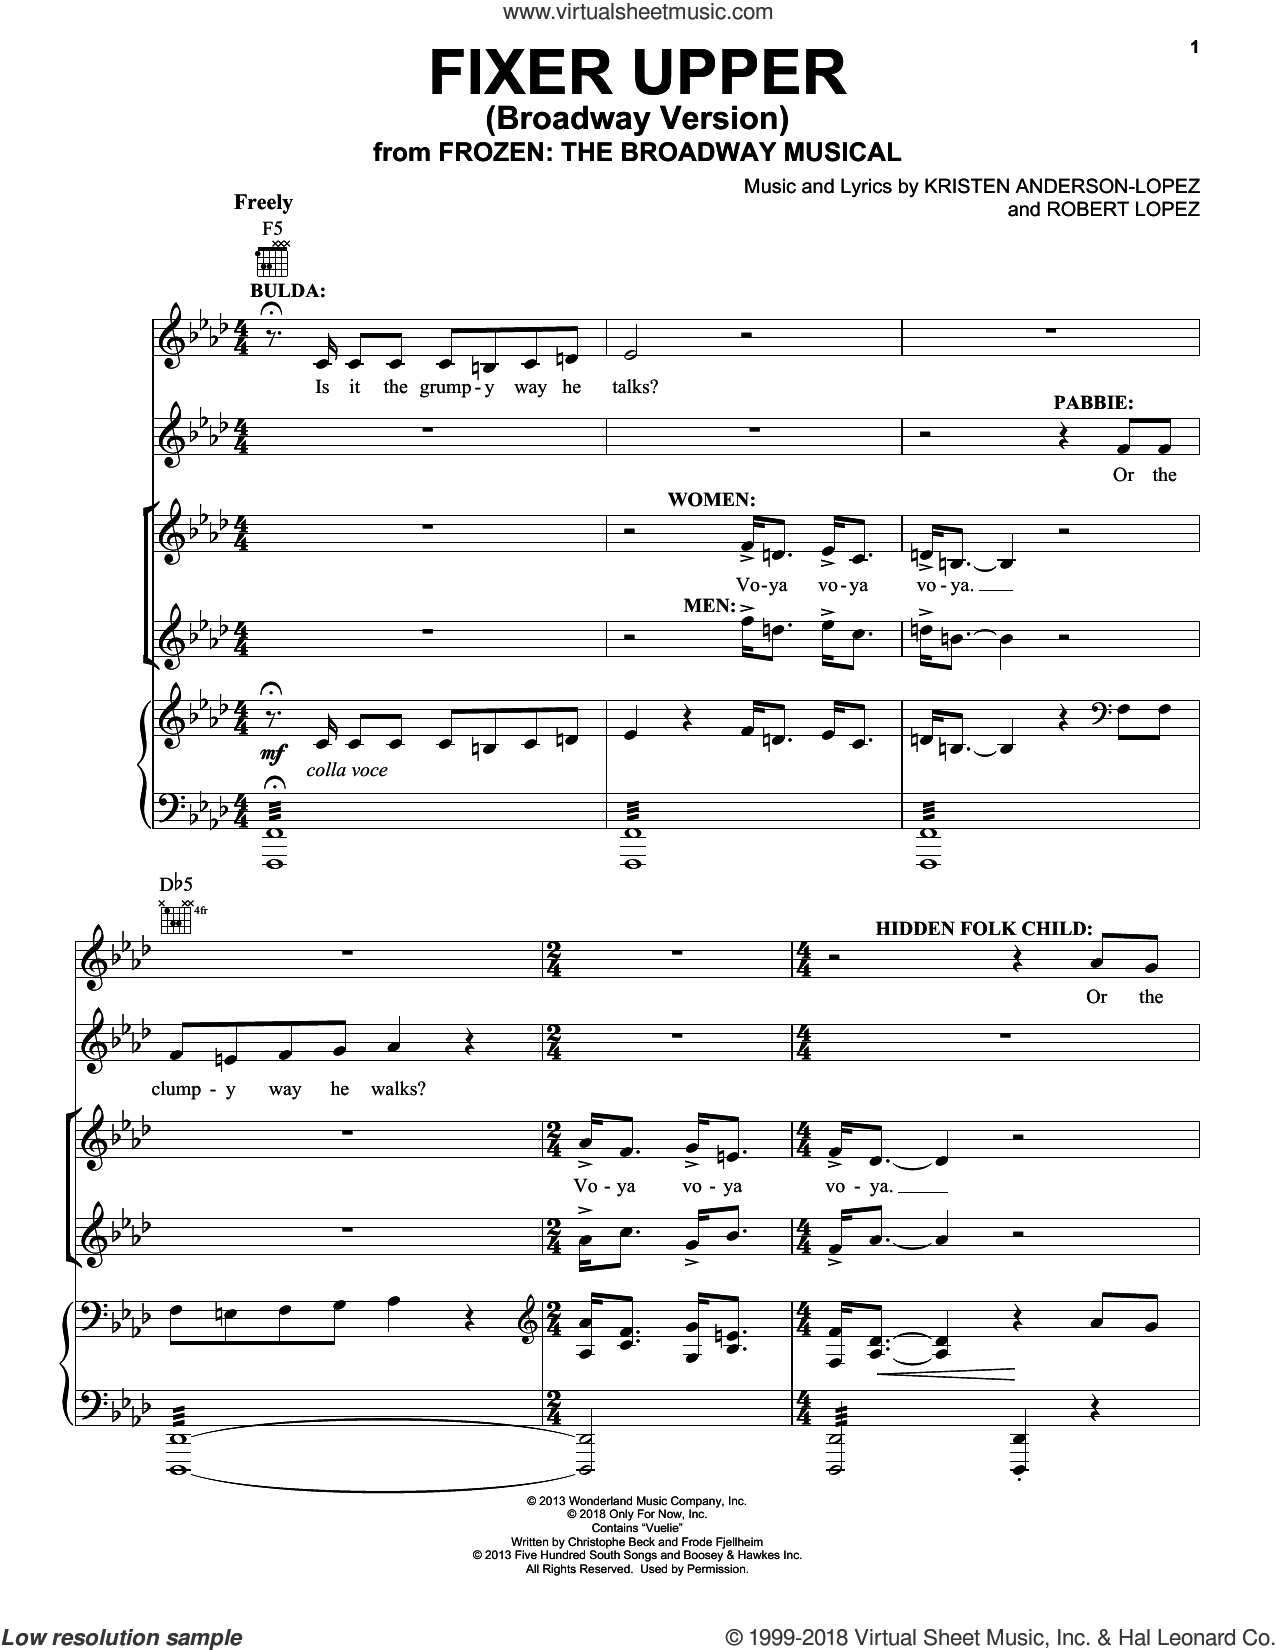 Fixer Upper (from Frozen: The Broadway Musical) sheet music for voice, piano or guitar by Robert Lopez, Kristen Anderson-Lopez and Kristen Anderson-Lopez & Robert Lopez, intermediate skill level